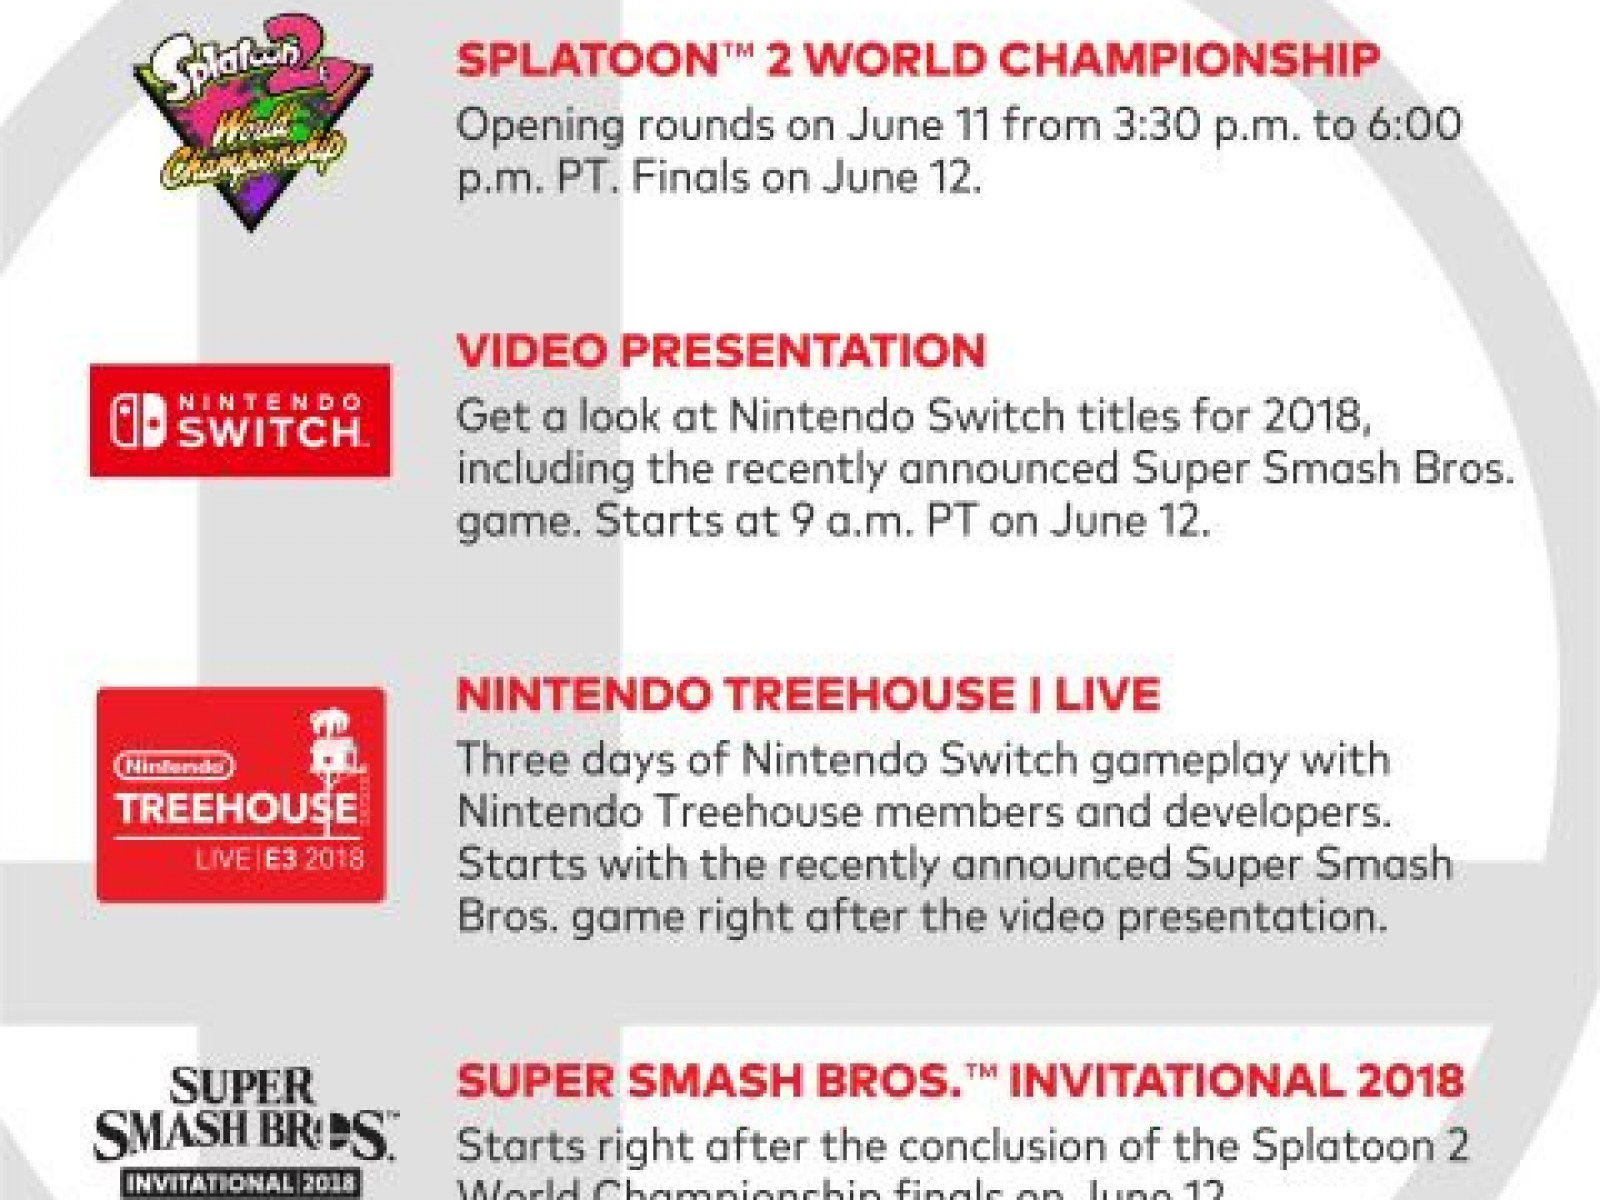 Nintendo E3 2018 Schedule Released: Super Smash Bros  Gets